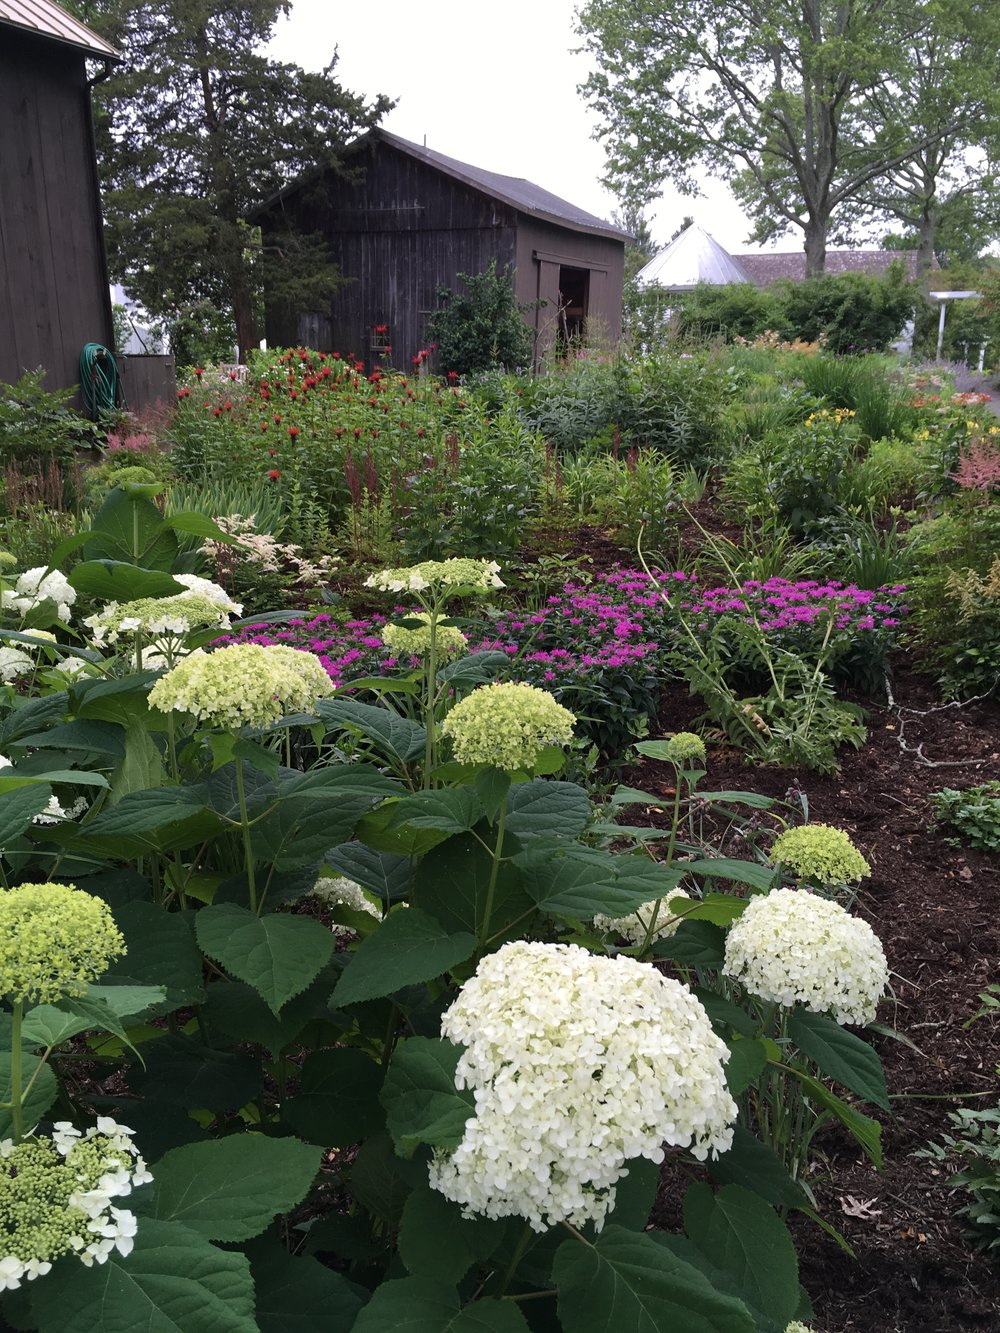 Hydrangea blooming in the Gardens, in front of a few of the museums outbuildings.